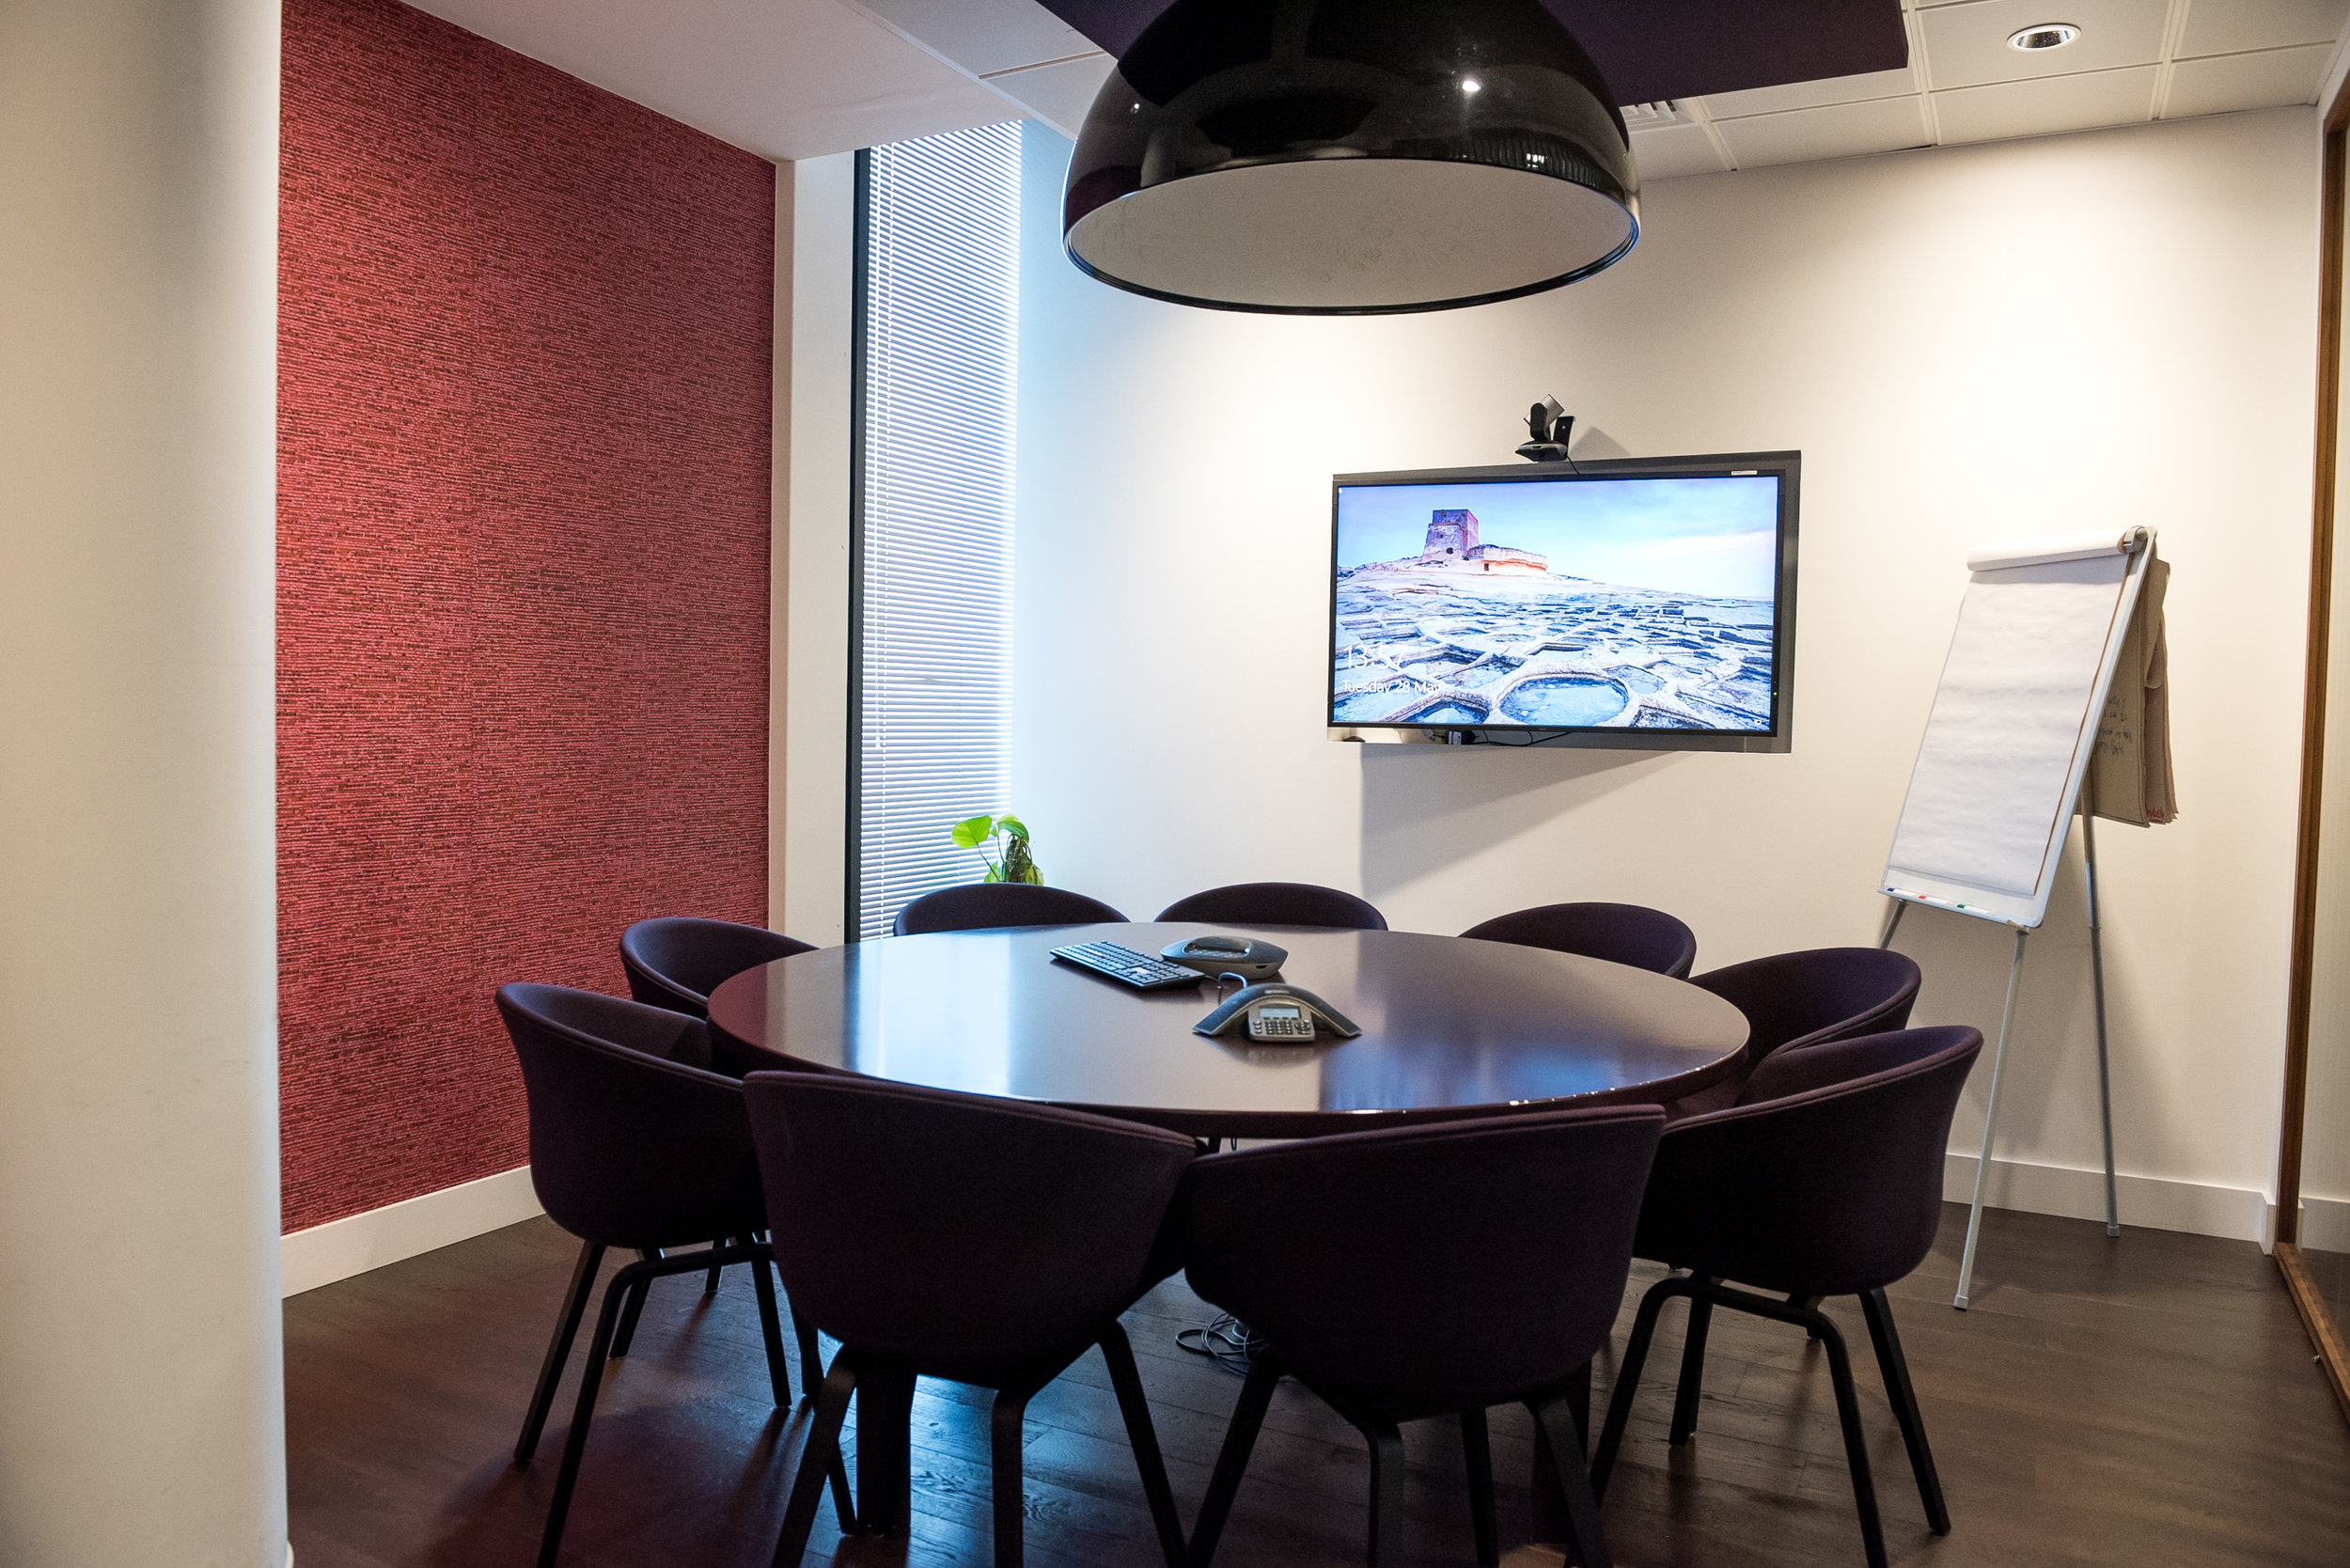 Huddle room and Video Conference installs - Quote, purchase and installations of displays, cameras, projectors,speakers, and microphones. Configuration of hardware with Microsoft Teams, Zoom, and Skype for Business.